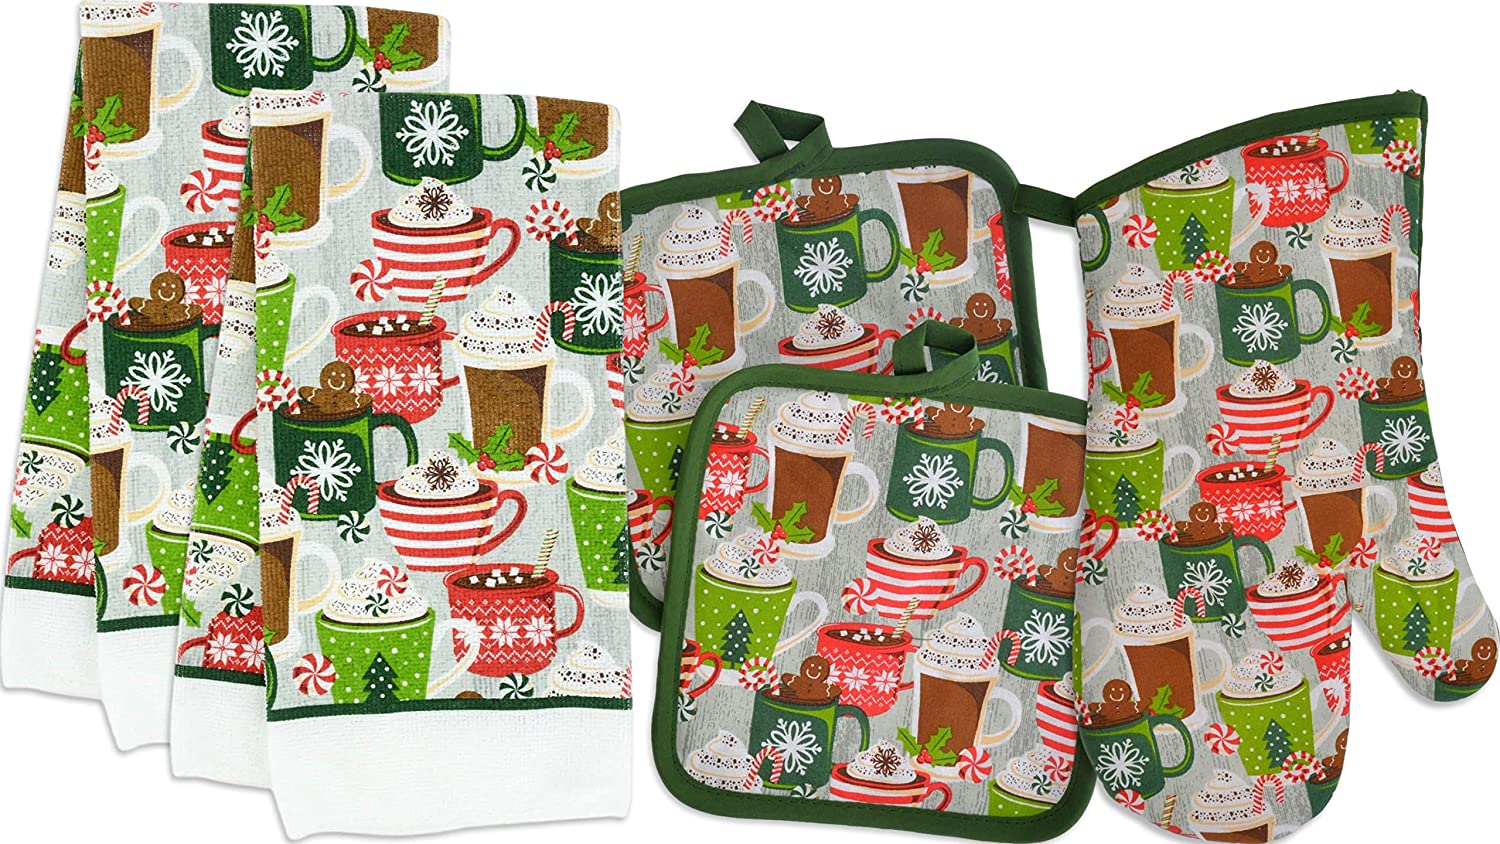 Christmas Towel Set Winter Themed Decor for Kitchen Bundle of 5 Items, 2 Towels, 2 Potholders, 1 Oven Mitt (Hot Cocoa)